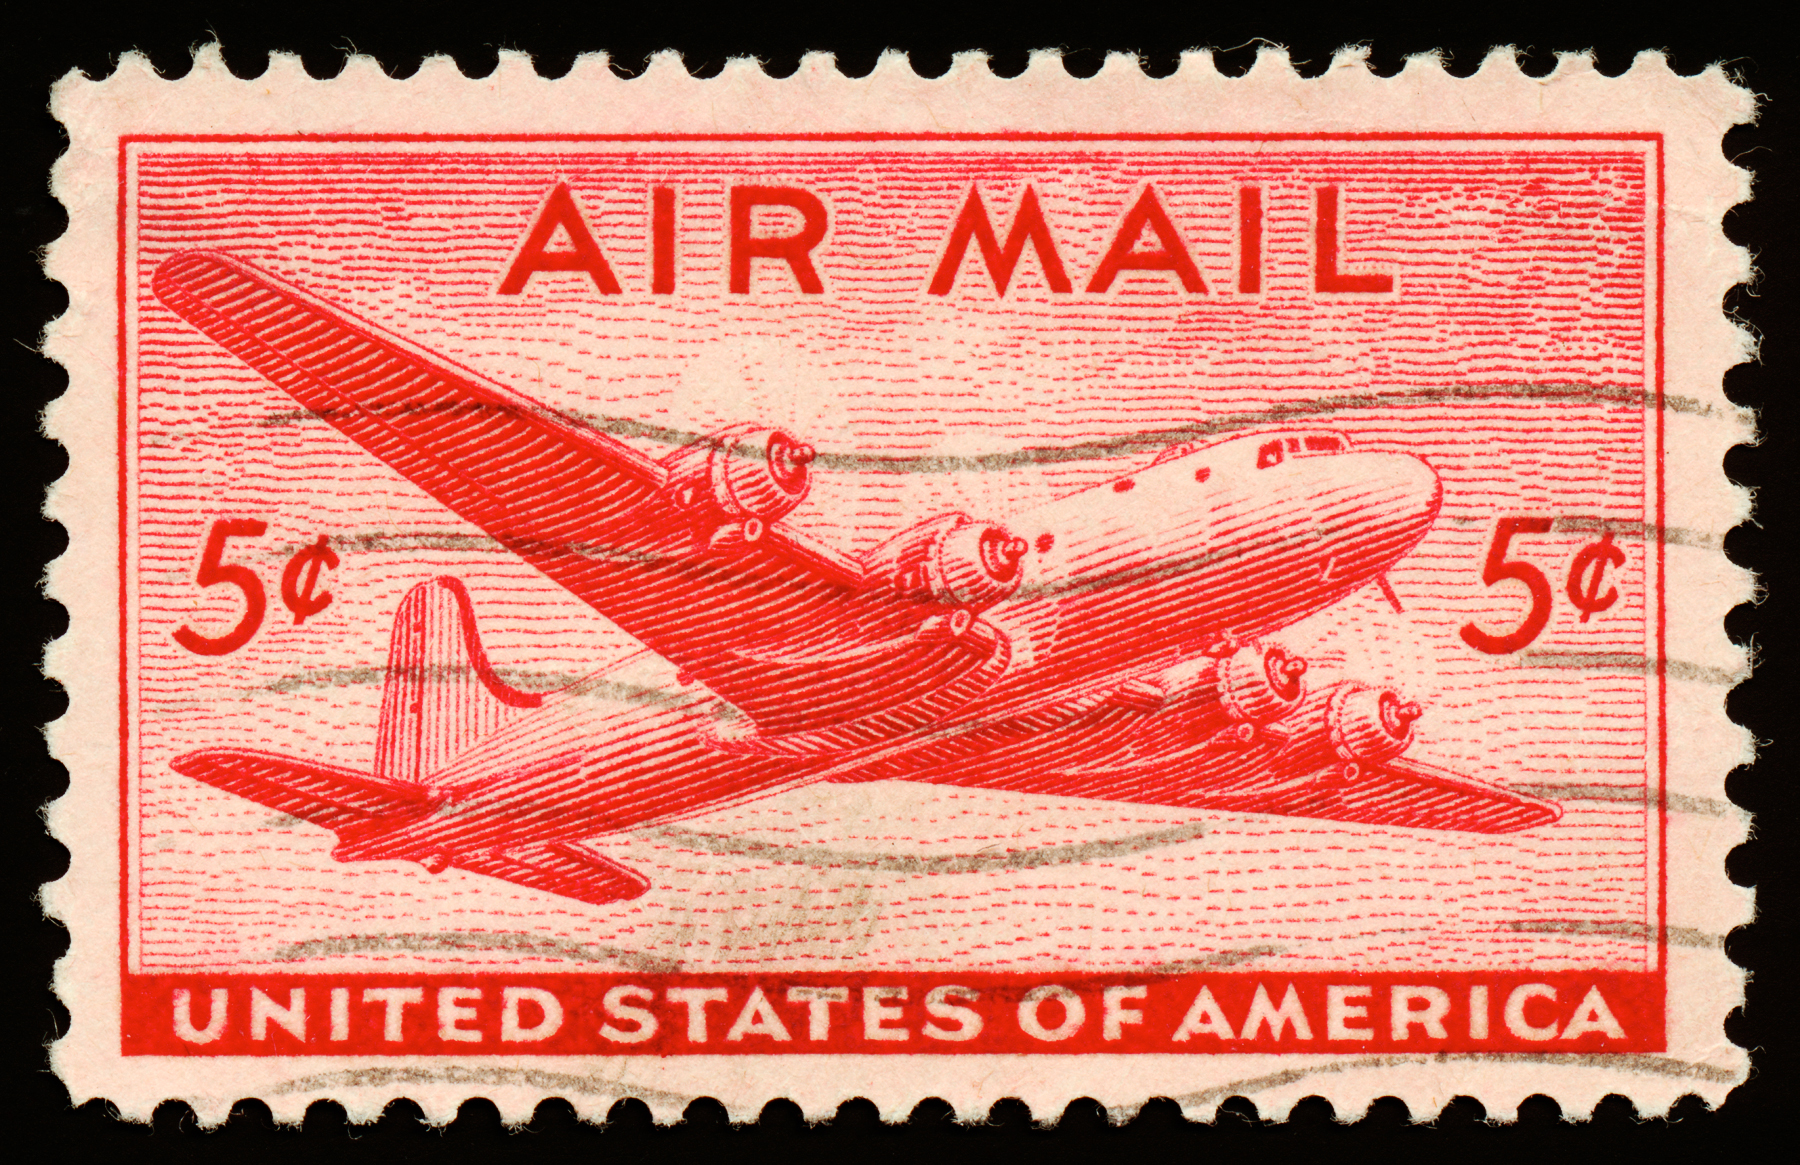 Red DC4 Skymaster Air Mail Stamp, circa 1946. By Nicolas Raymond.